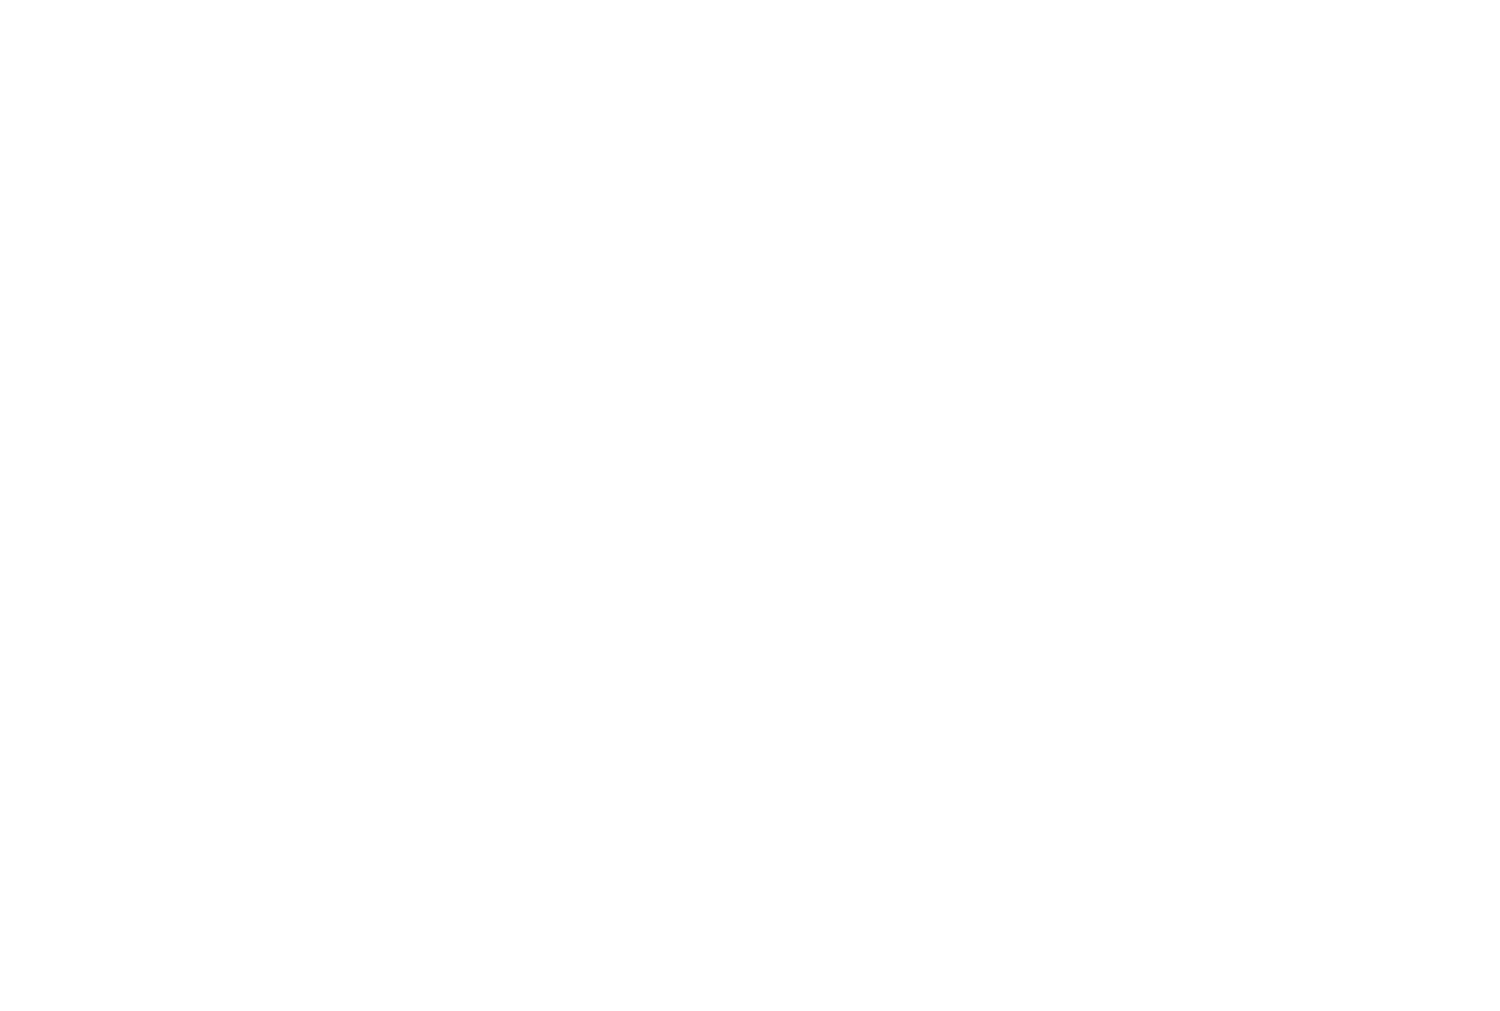 Little Joe Media